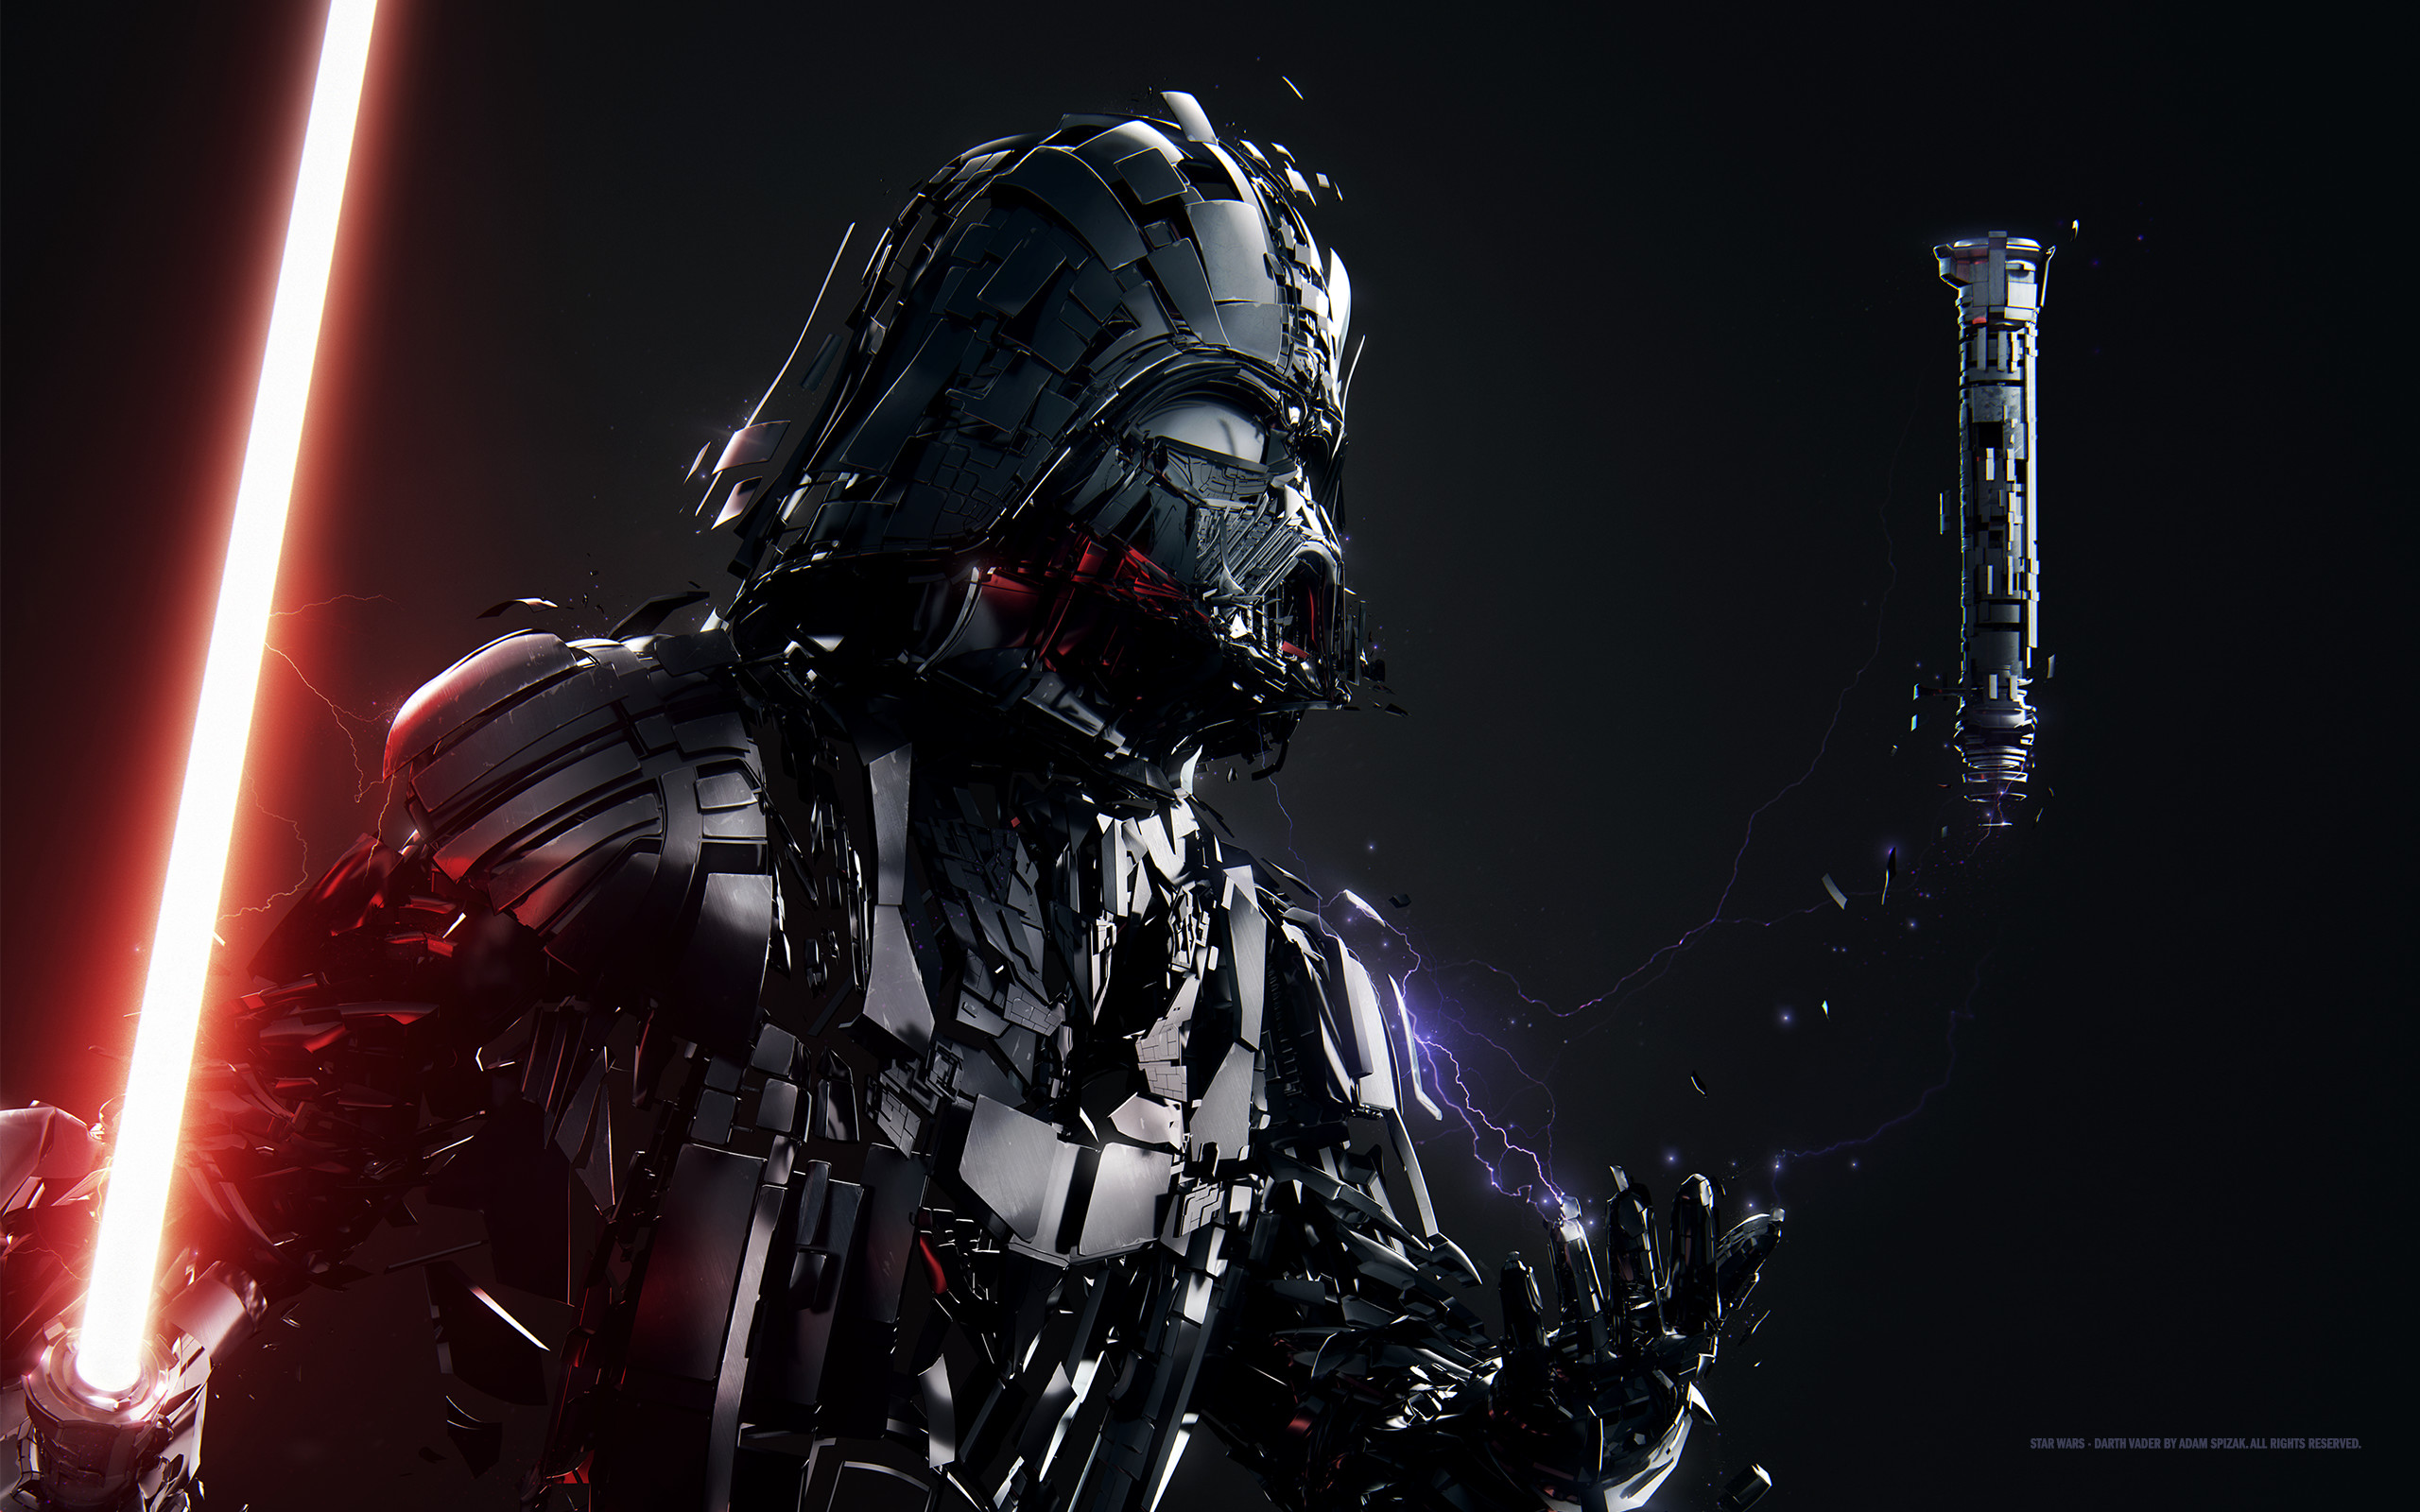 2560x1600 Sci Fi - Star Wars Darth Vader Lightsaber Wallpaper